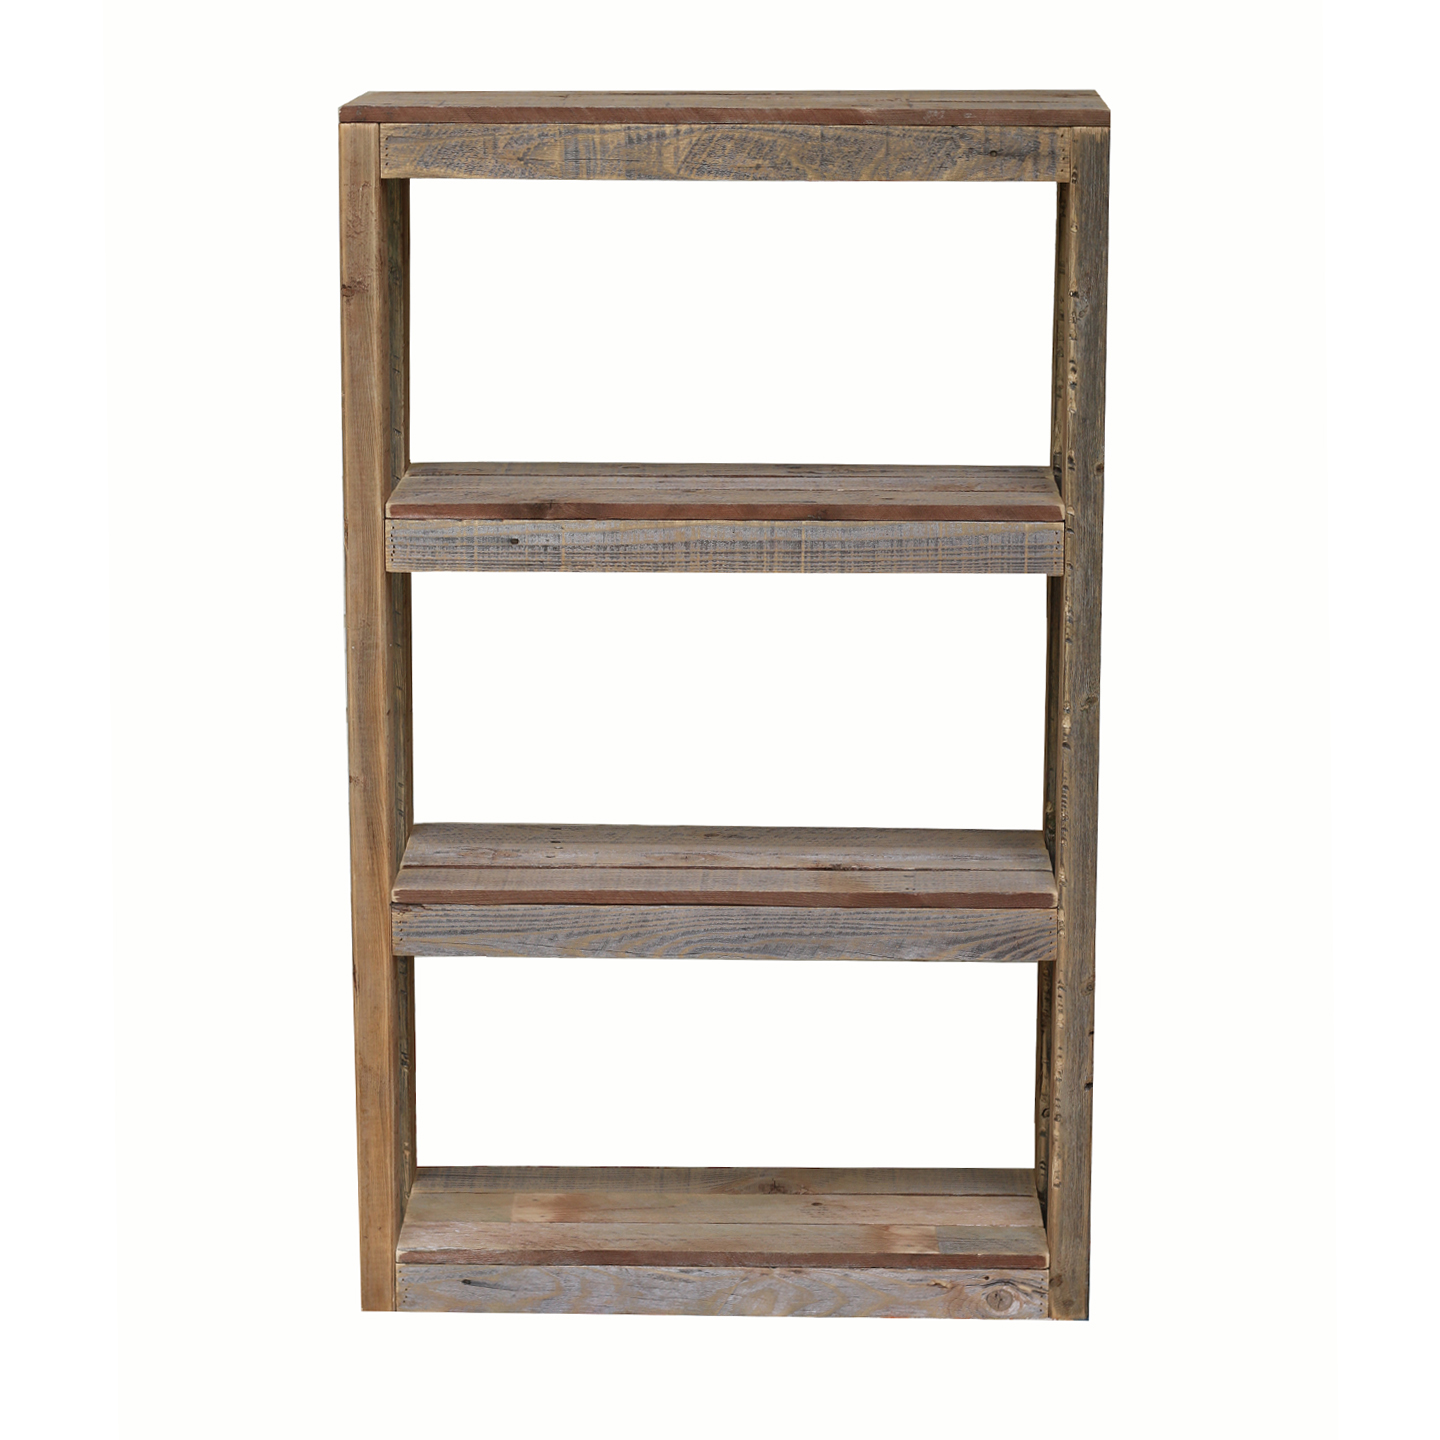 Prime Rustic Freestanding Shelving Unit Home Interior And Landscaping Oversignezvosmurscom